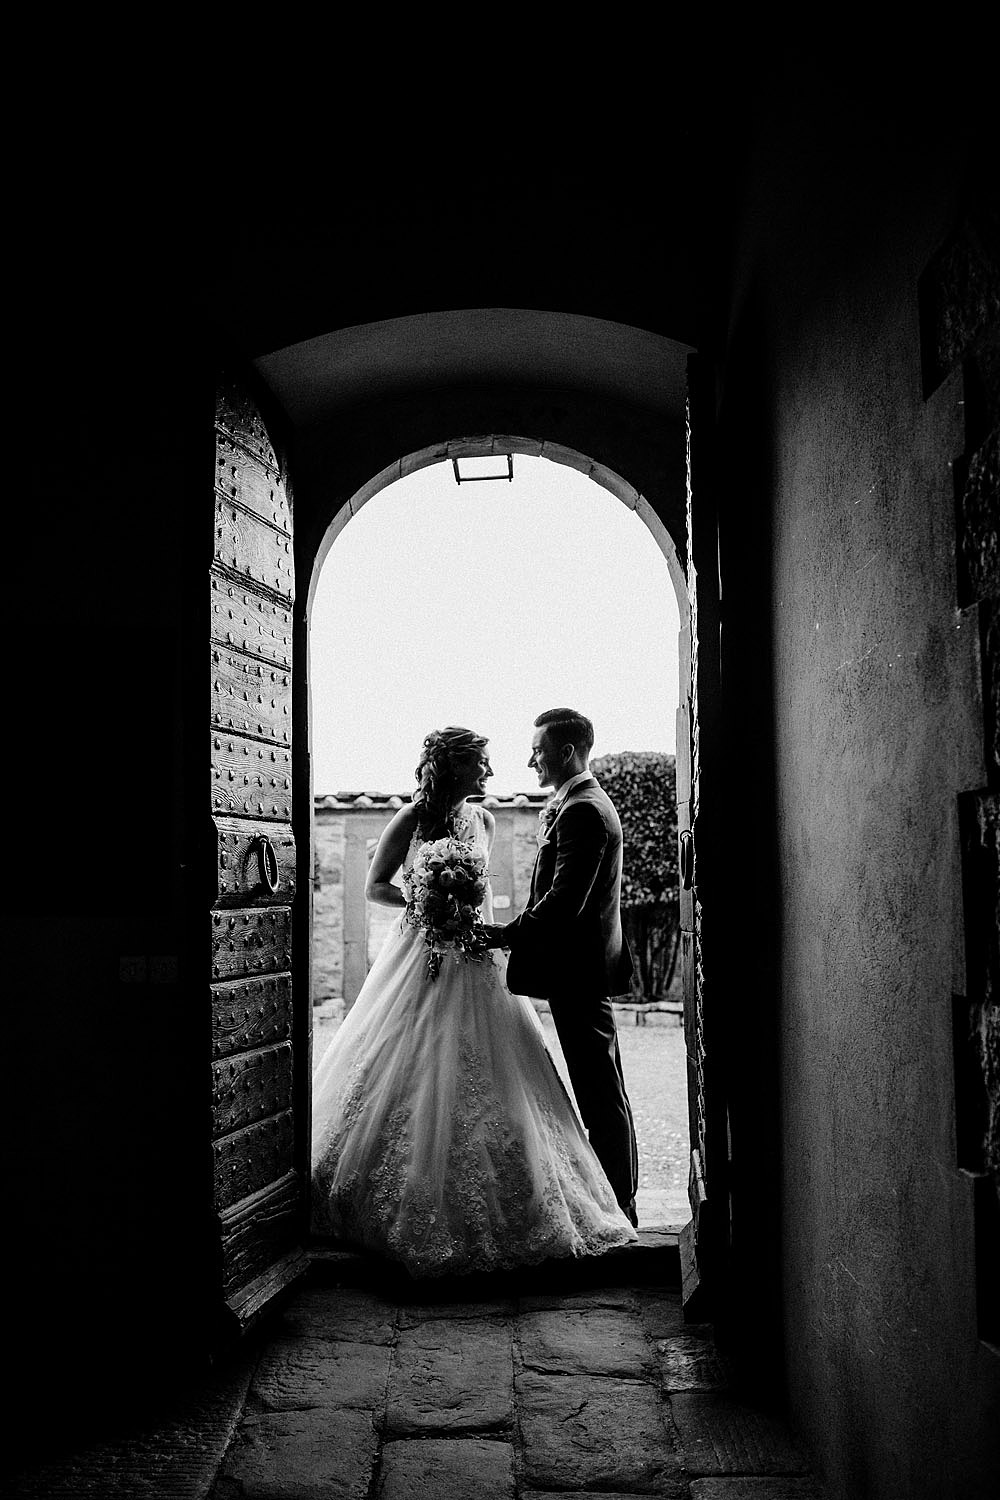 Matrimonio nel Chianti nell'incantevole atmosfera del Castello di Meleto :: Luxury wedding photography - 1